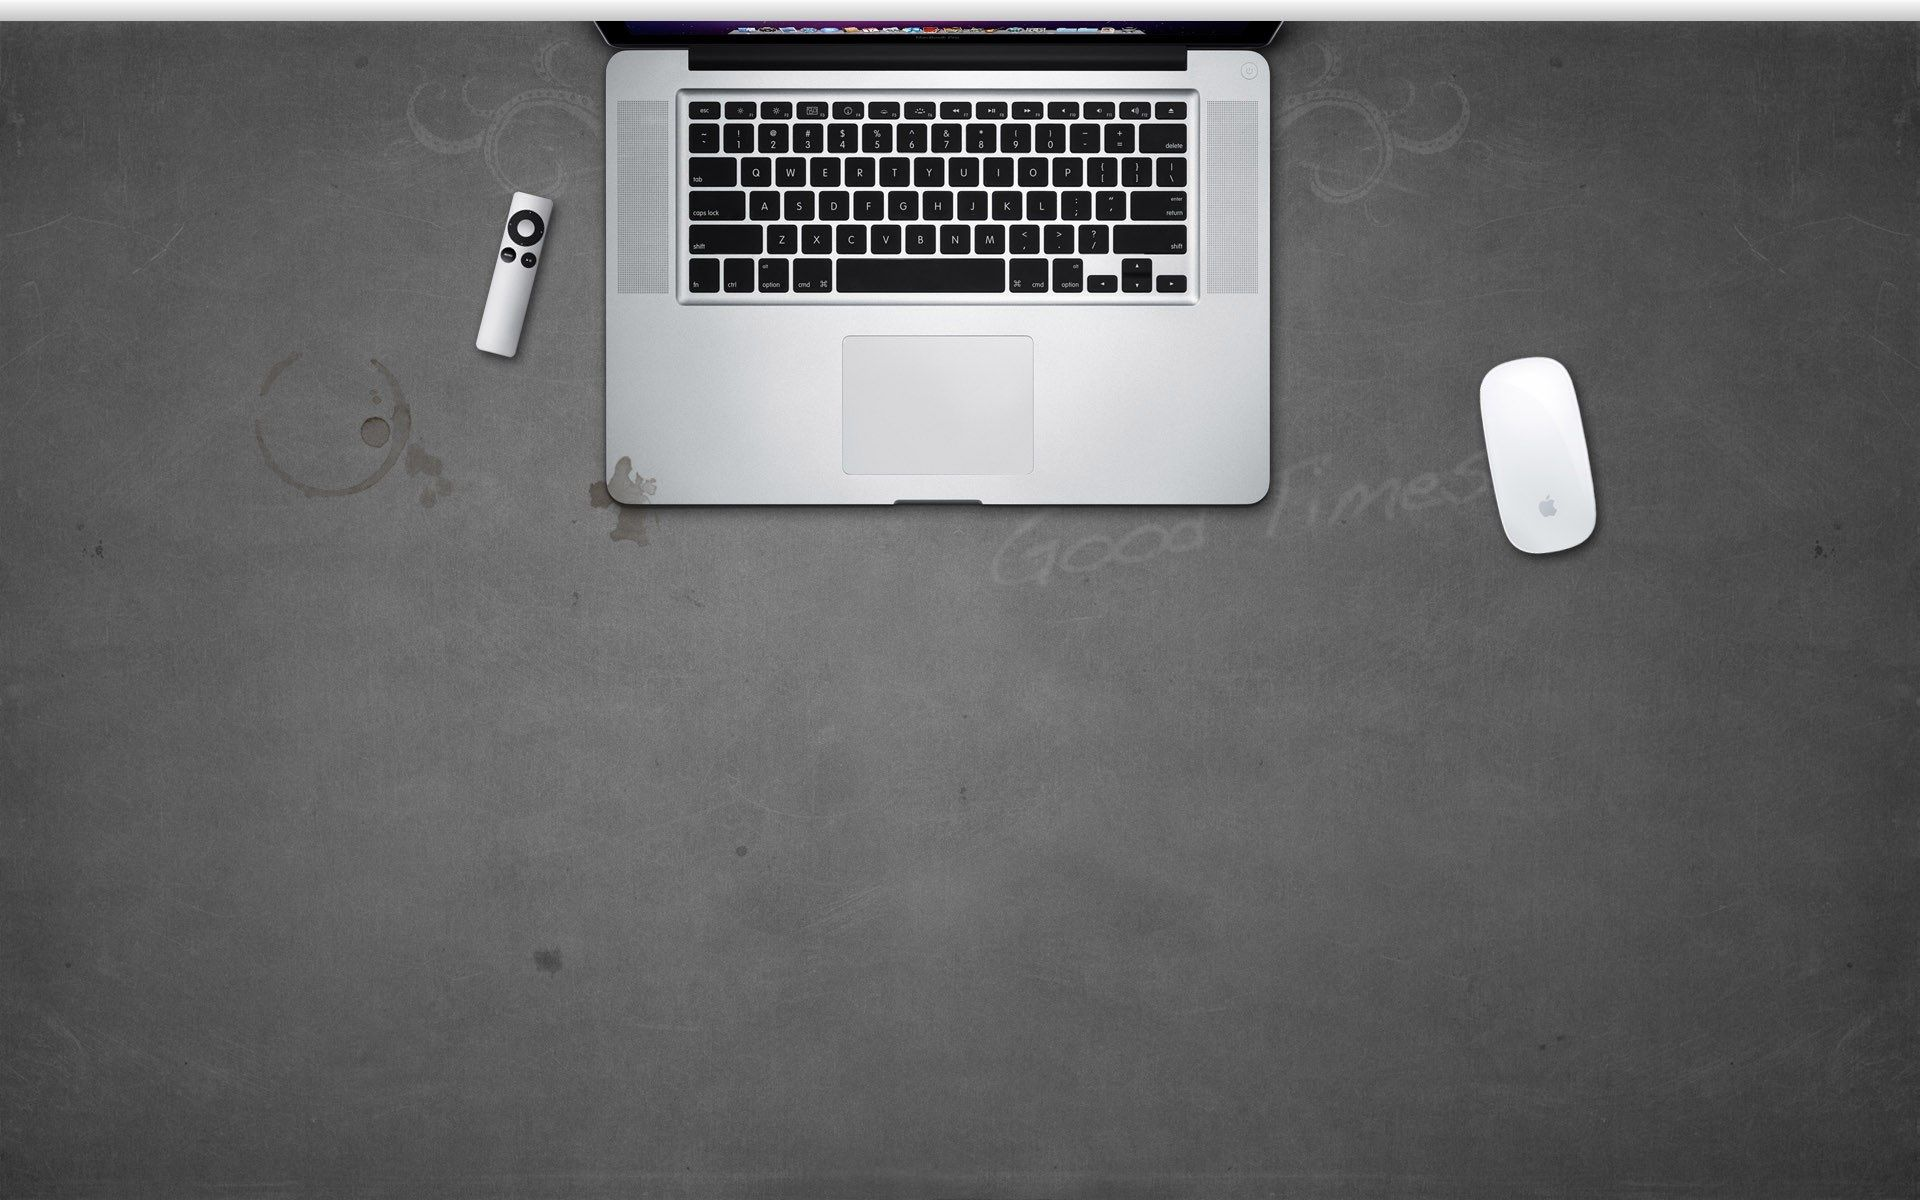 Simple Wallpaper Mac Laptop - 7a366d145680b8431407b507fd911d88  2018_70548.jpg